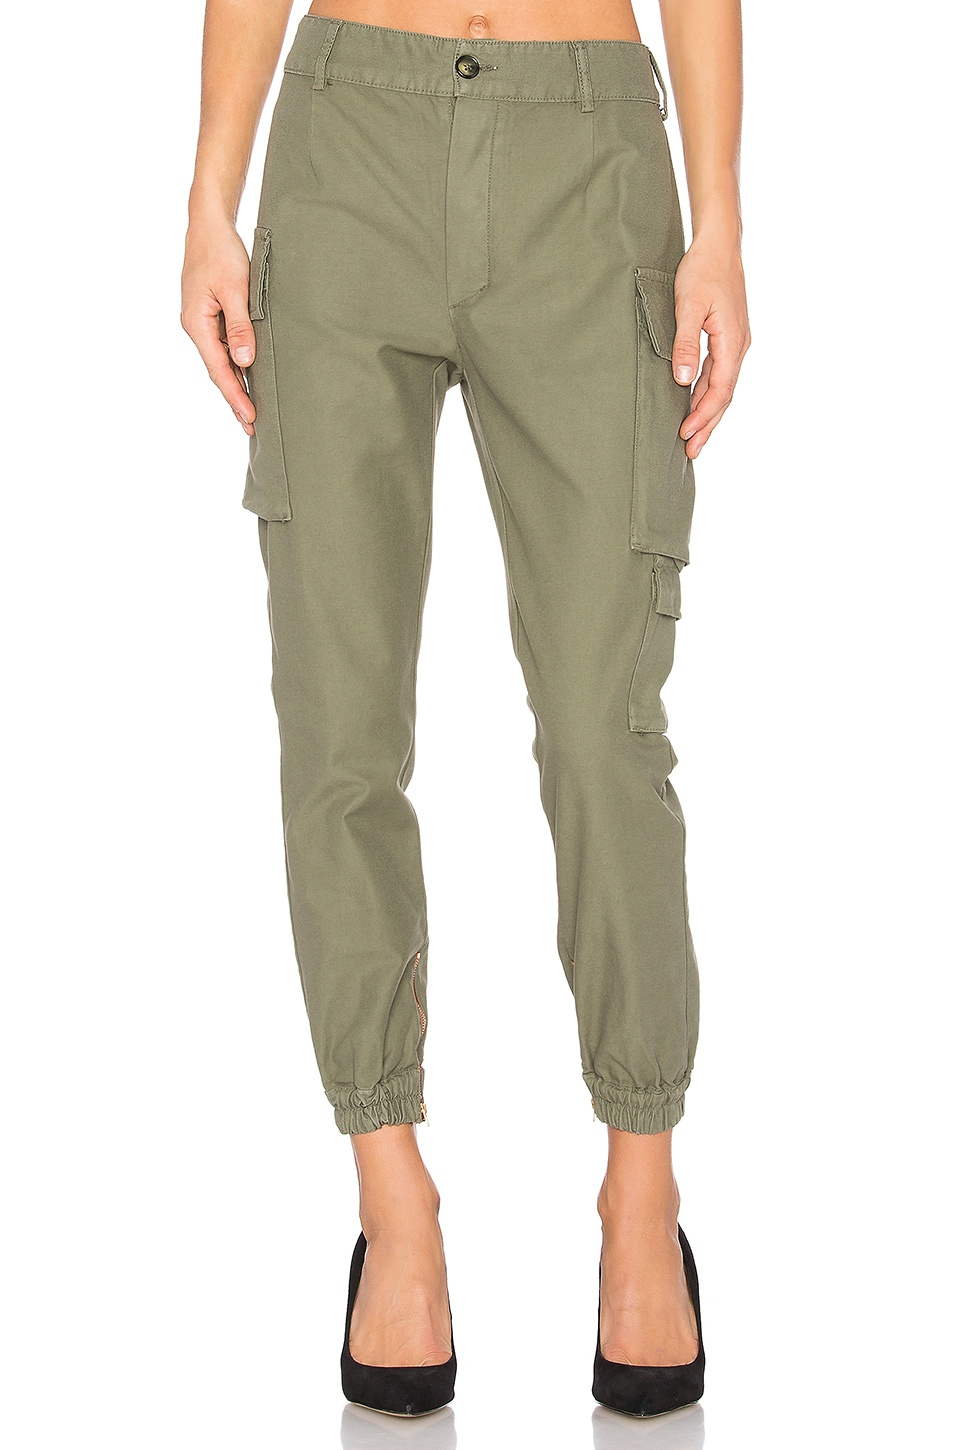 Etienne Marcel Military Cargo Pant in Khaki